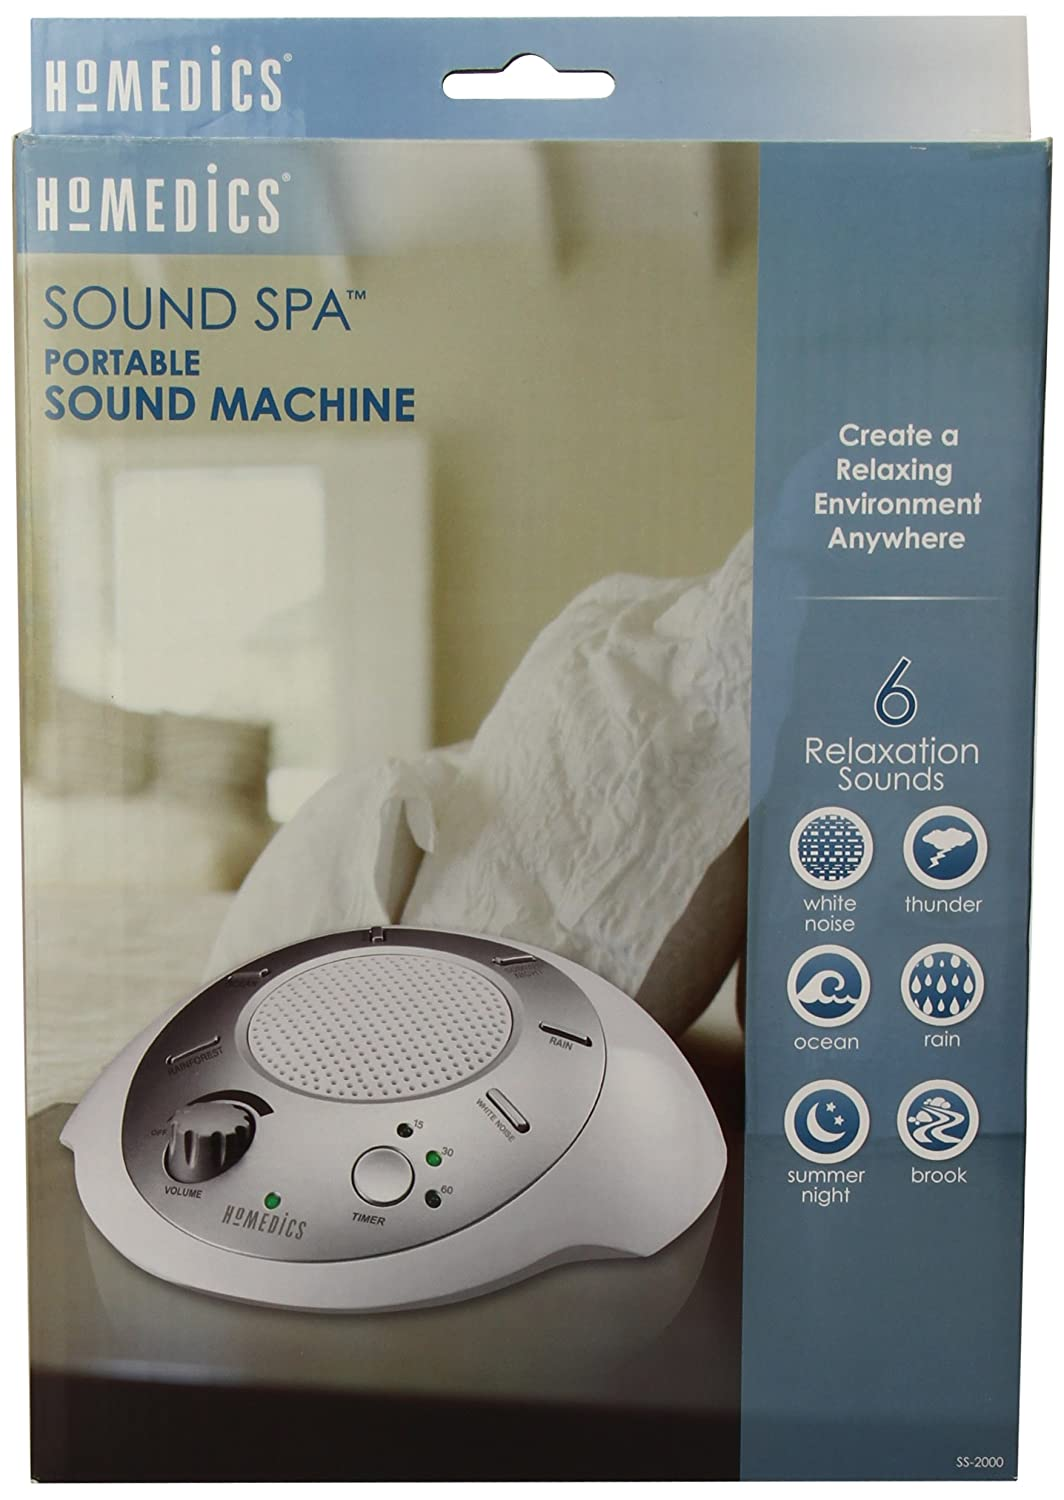 Best Noise Cancelling Machine For Home Amp Sleeping 2017